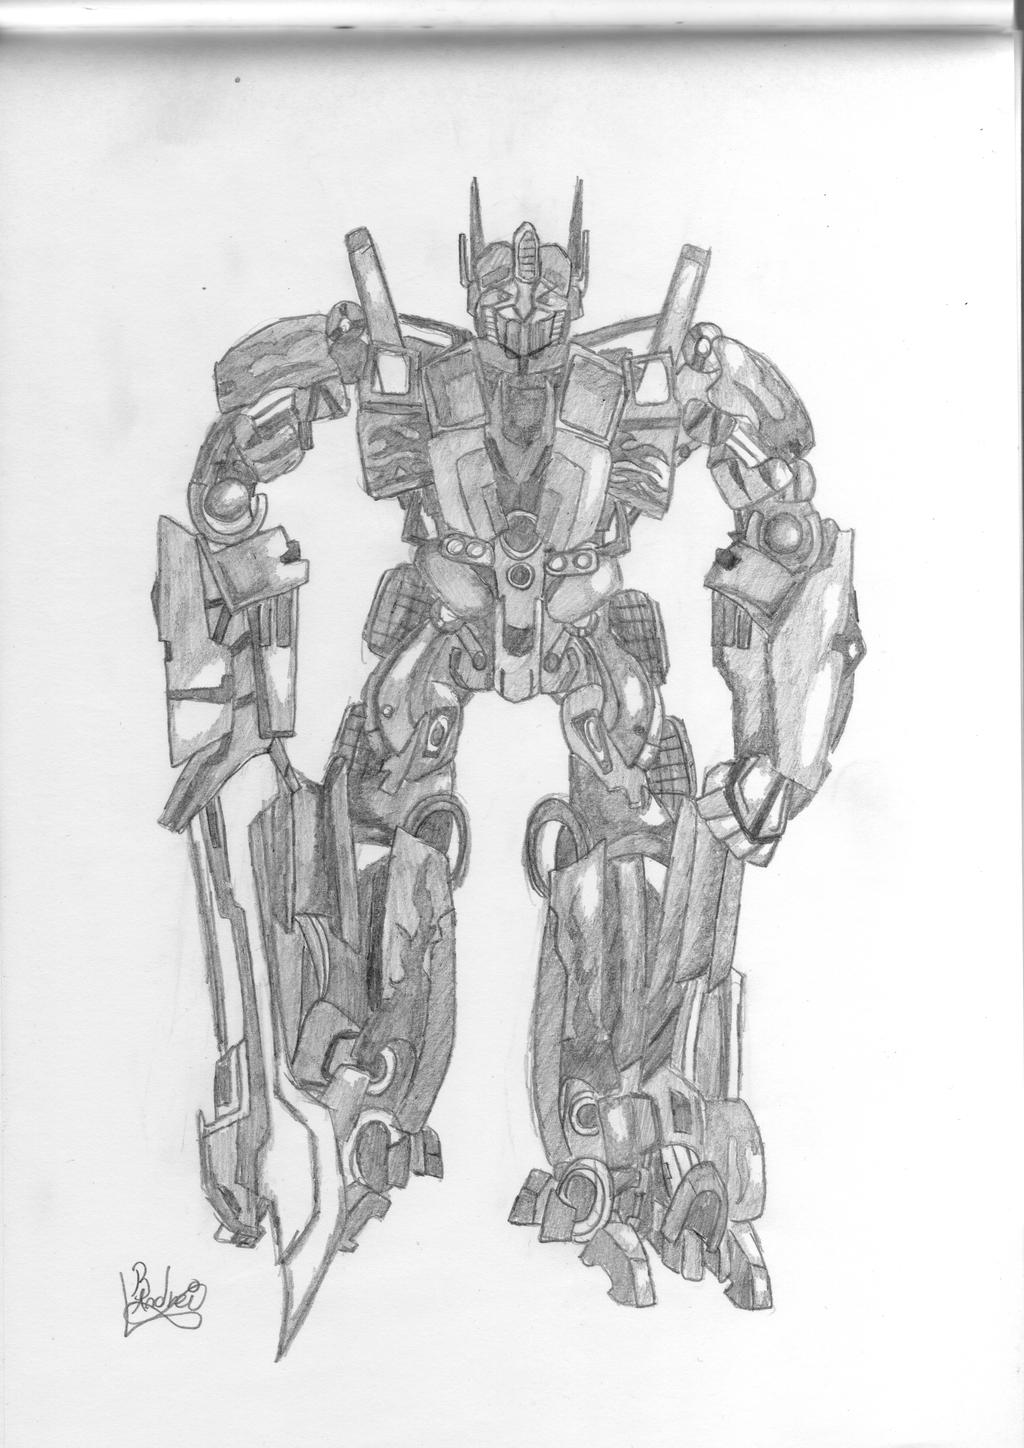 Transformers autobots optimus prime by kkriptor on deviantart for Transformers sentinel prime coloring pages